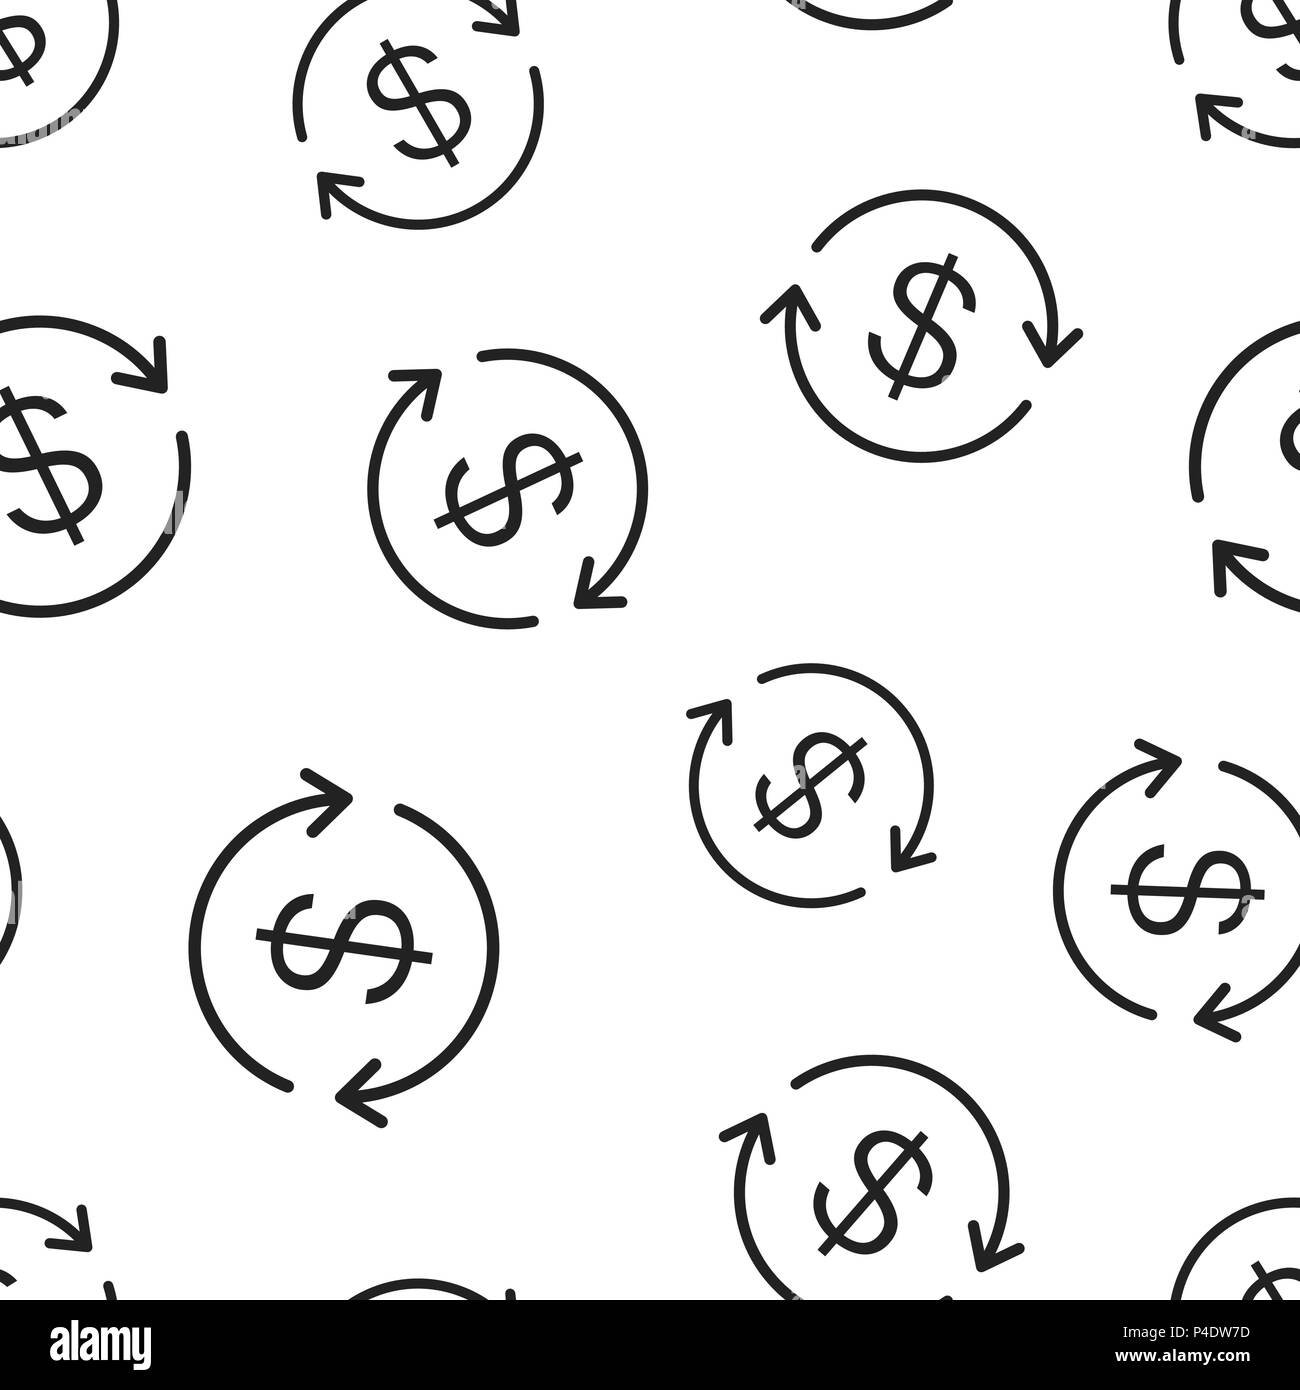 Money Dollar With Arrow Icon Seamless Pattern Background Business